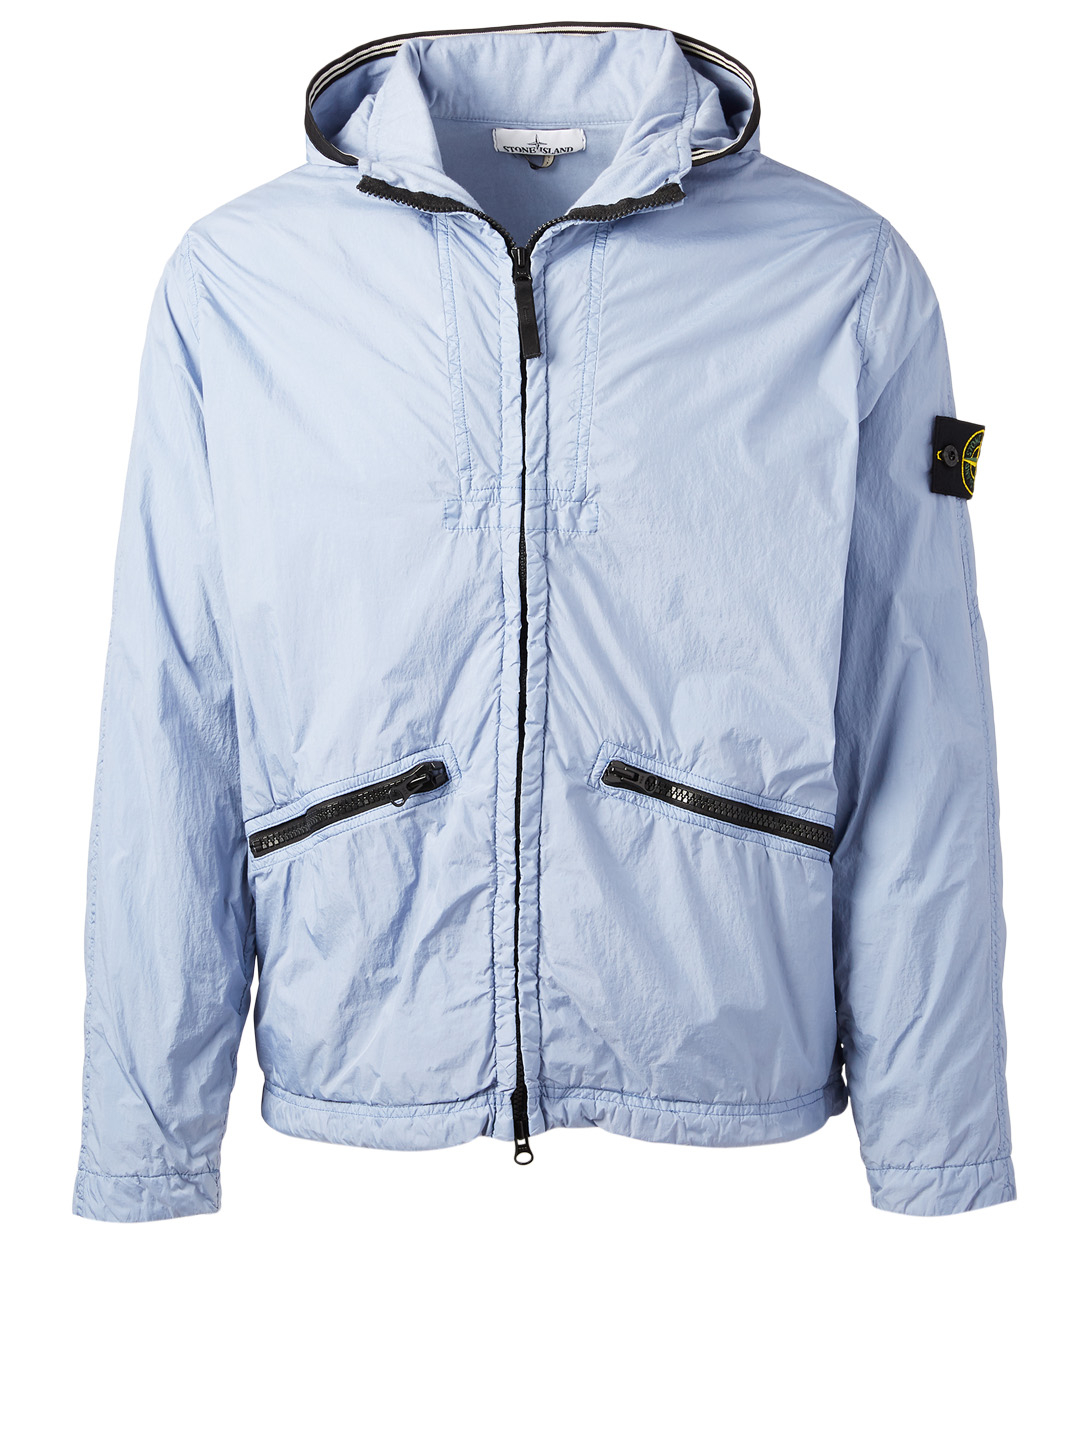 STONE ISLAND Crinkle Nylon Jacket Men's Purple